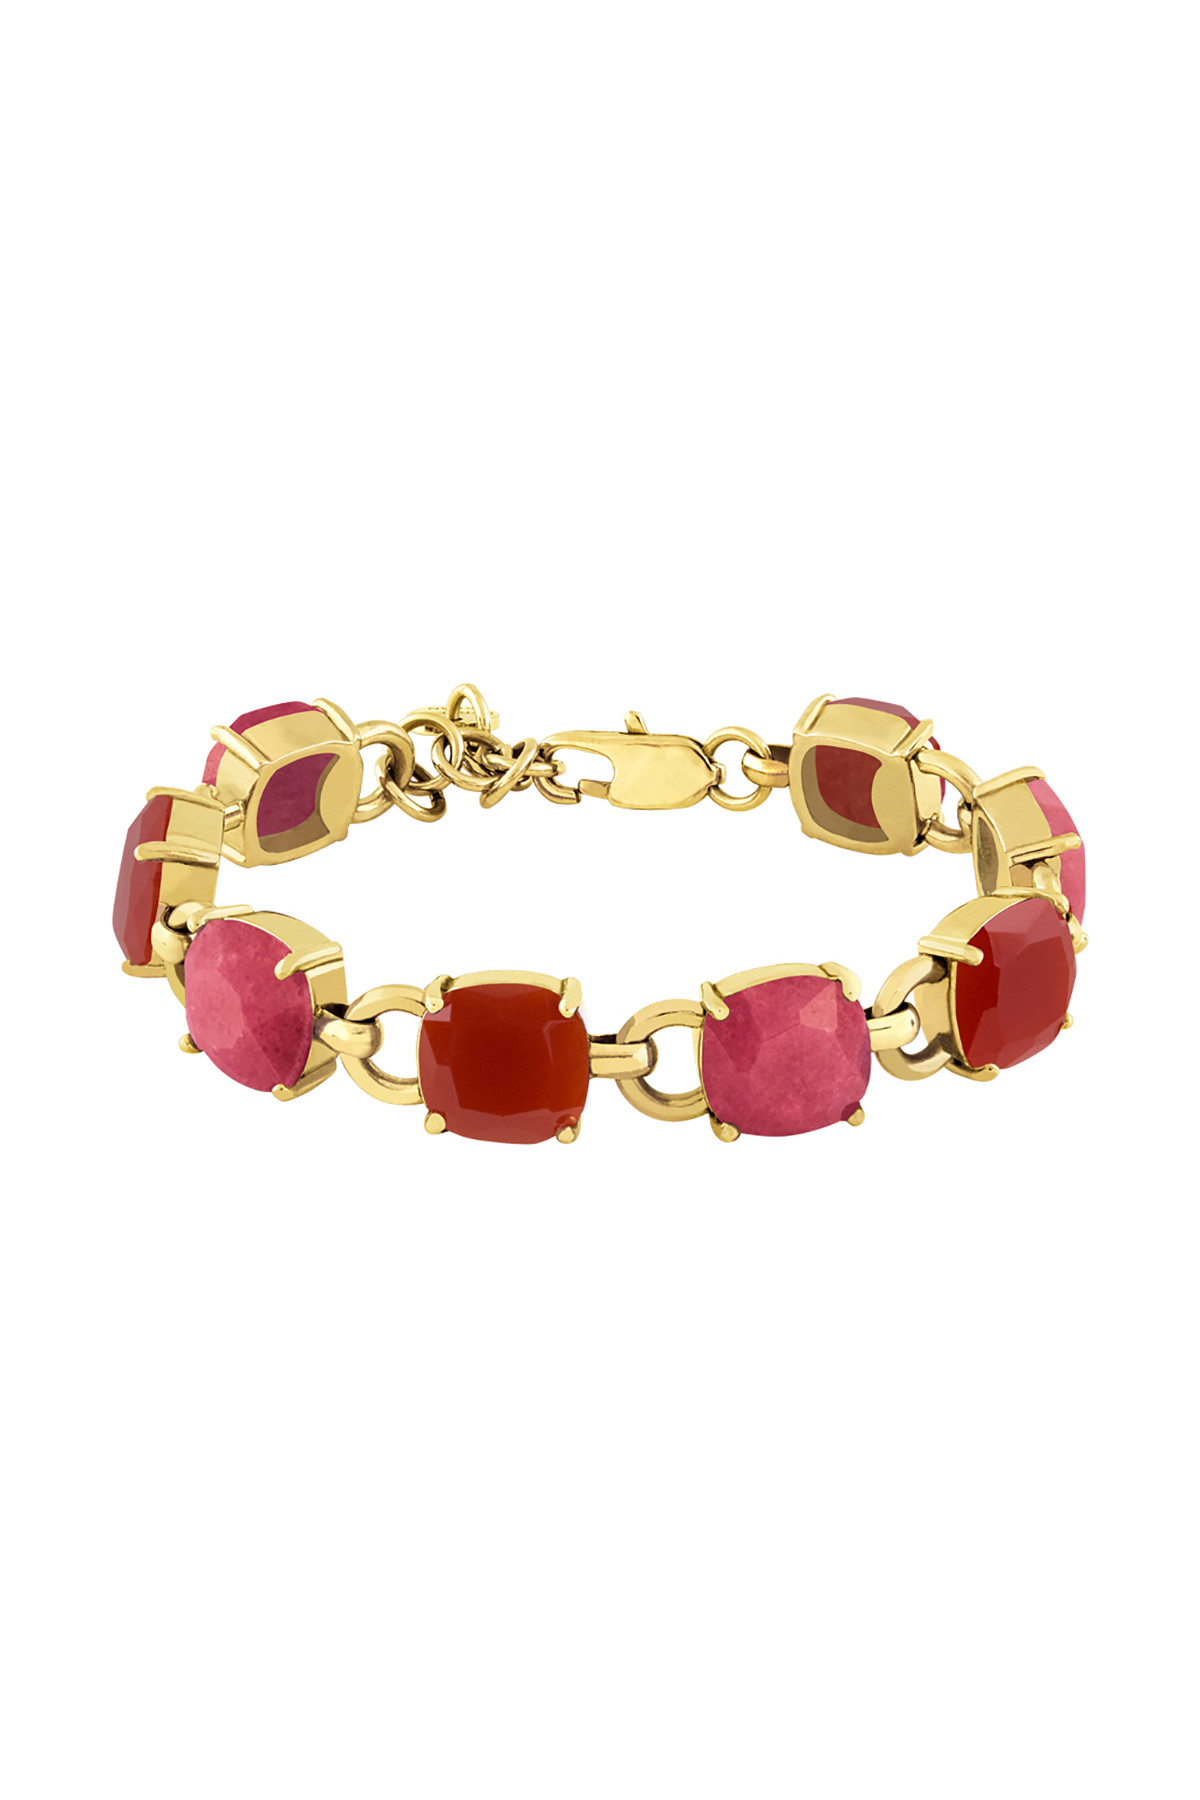 DYRBERG/KERN SINEAD ARMBÅND 351693 (Gold, Red, ONESIZE)